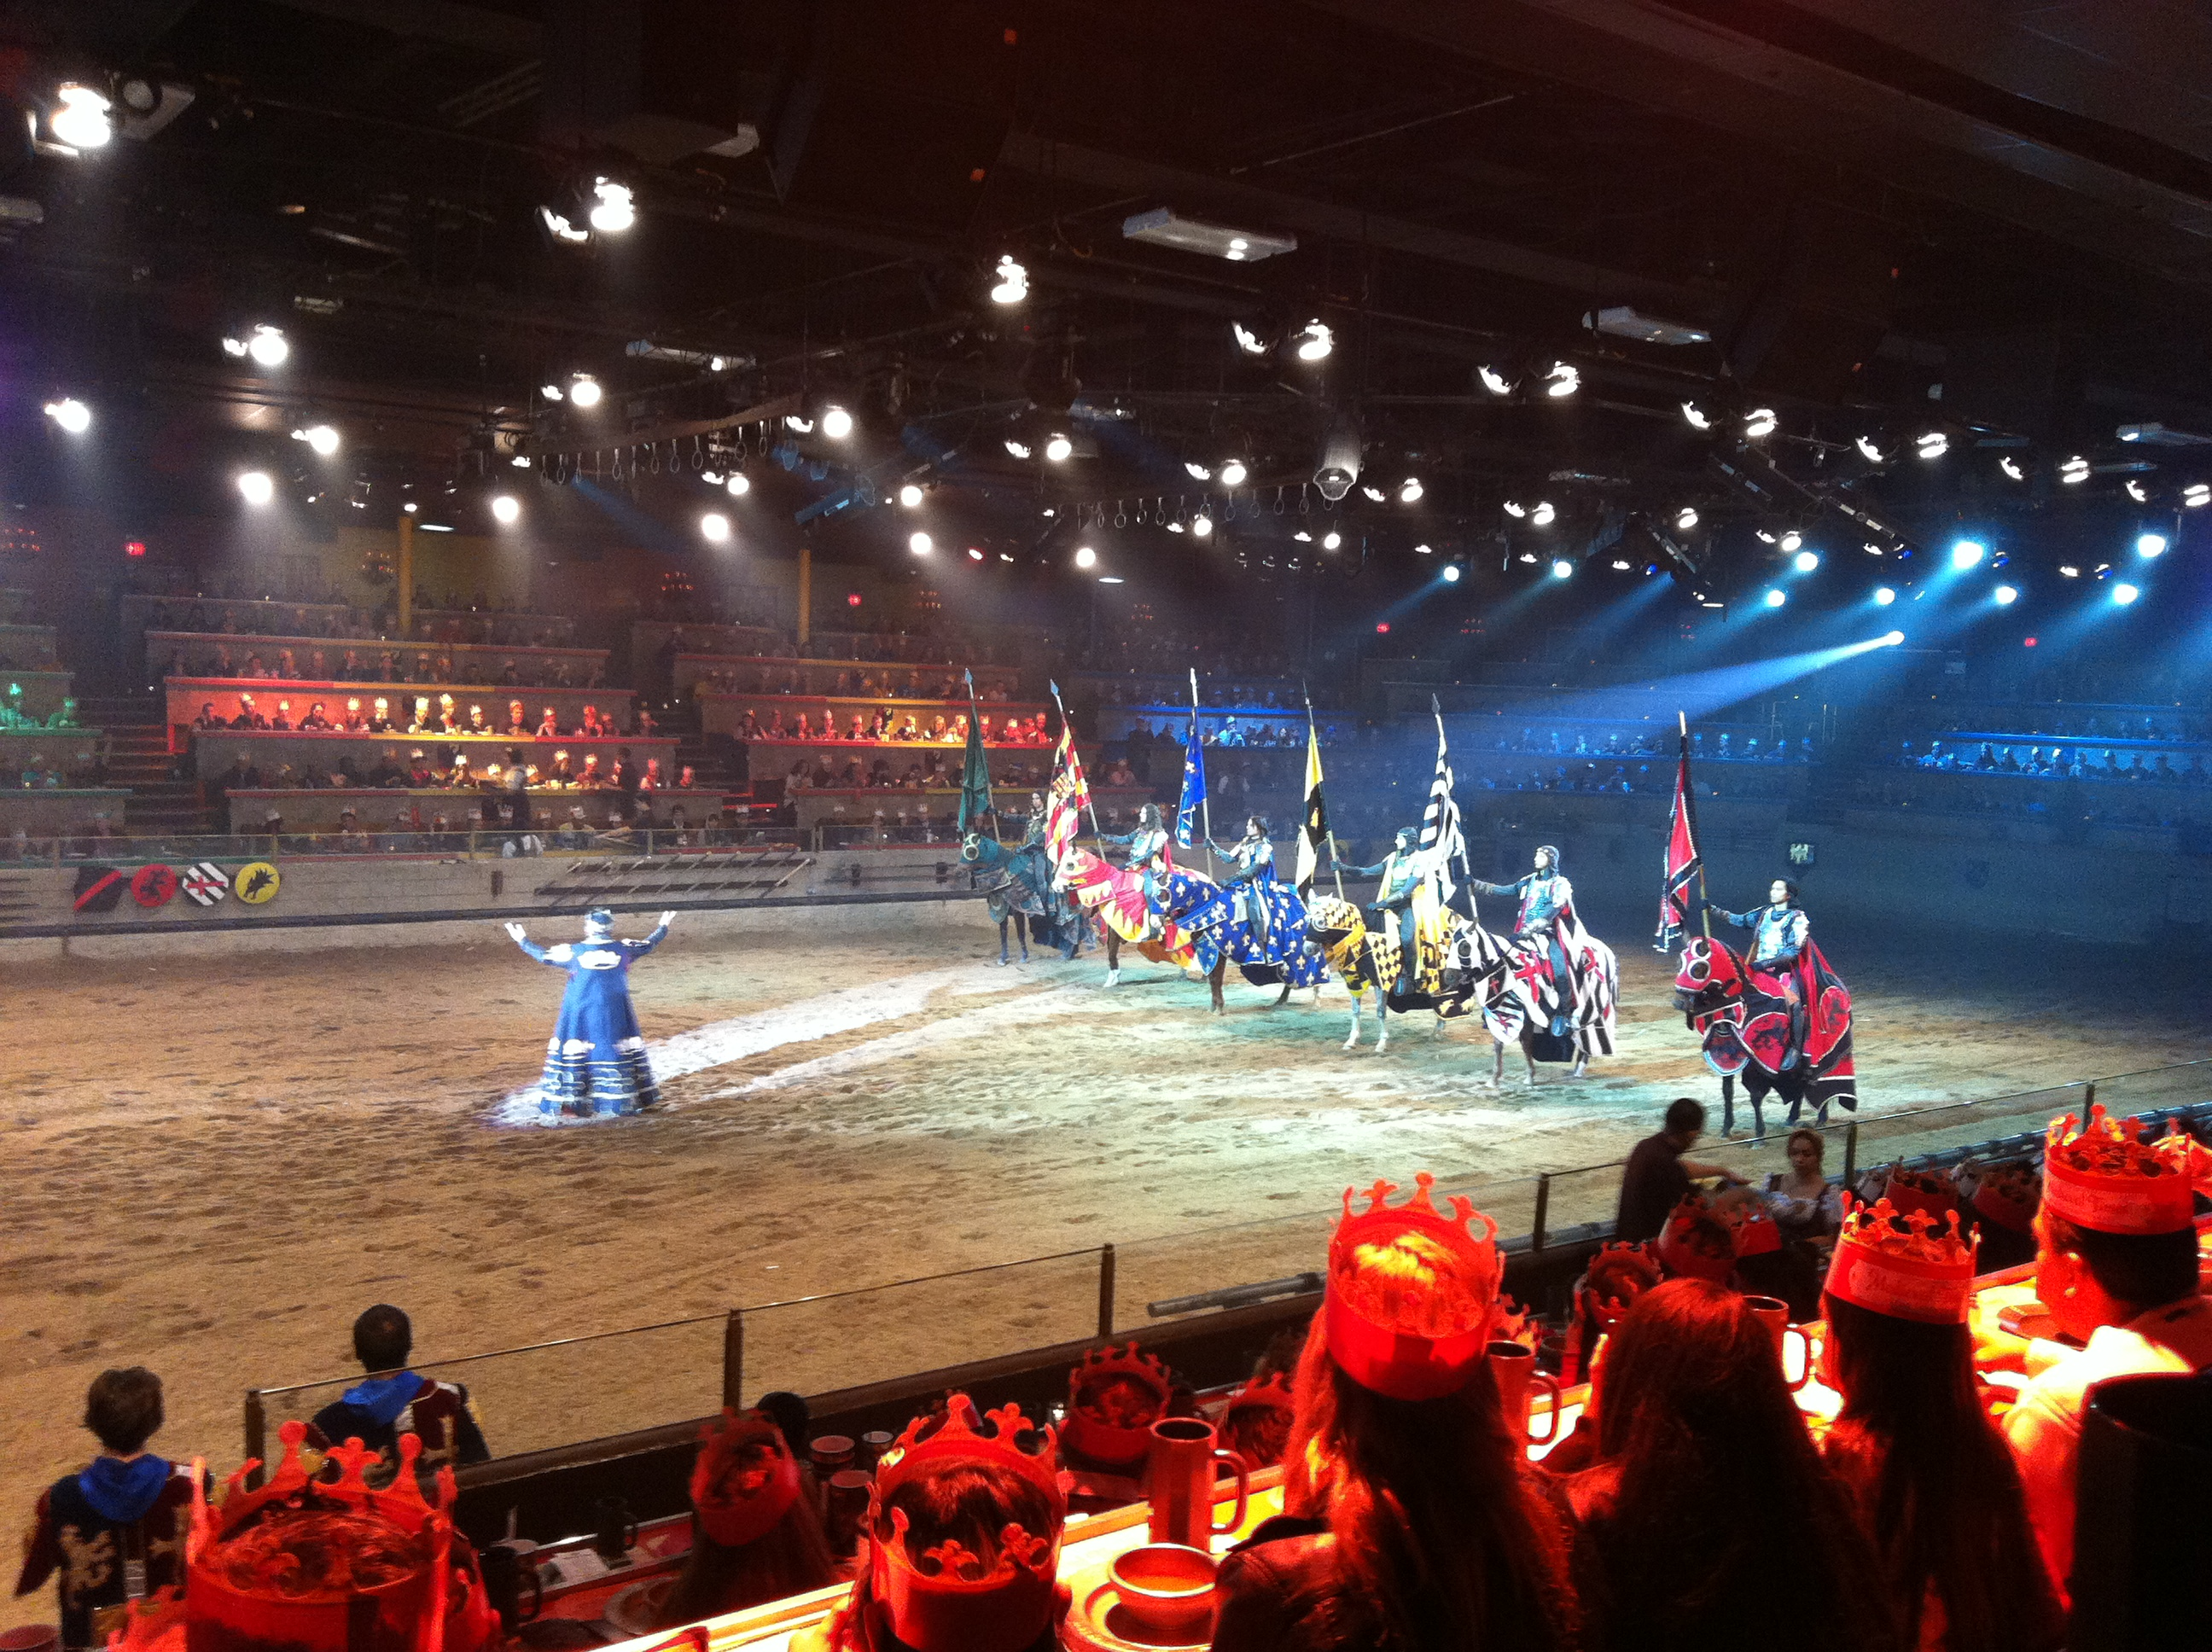 Medieval Times is honored to salute the men and women of our armed forces and their families by providing exclusive offers and discounted tickets.